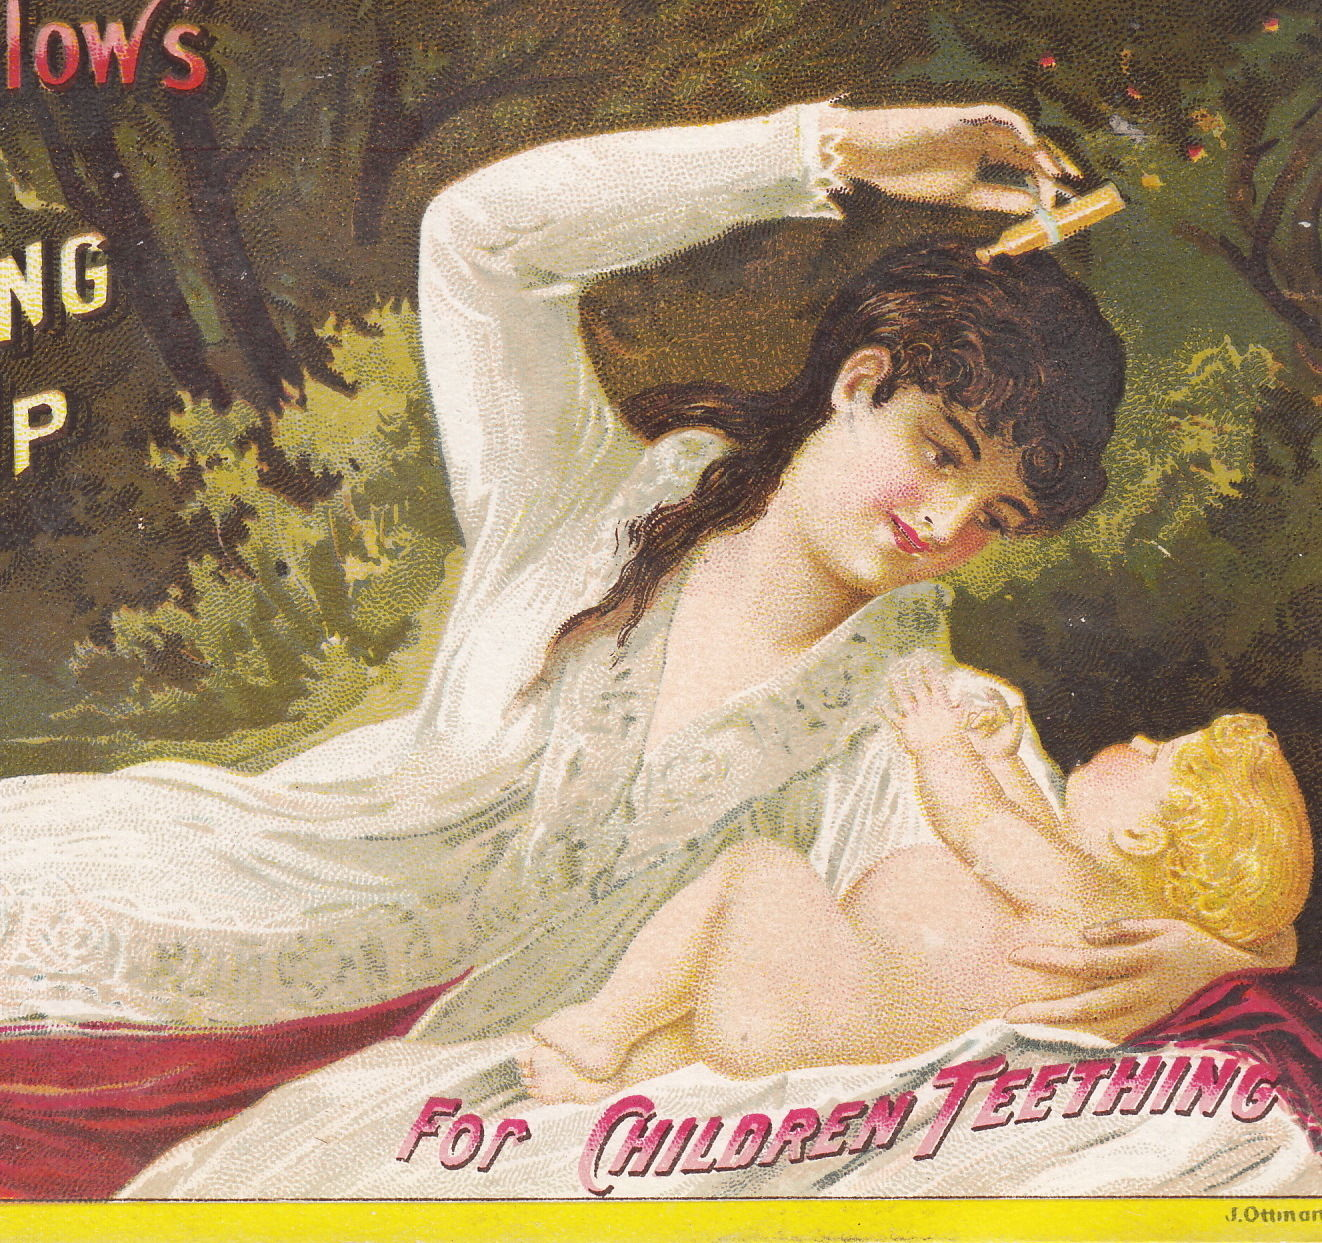 Mrs. Winslows Teething Syrup Advertising Trade Card Image